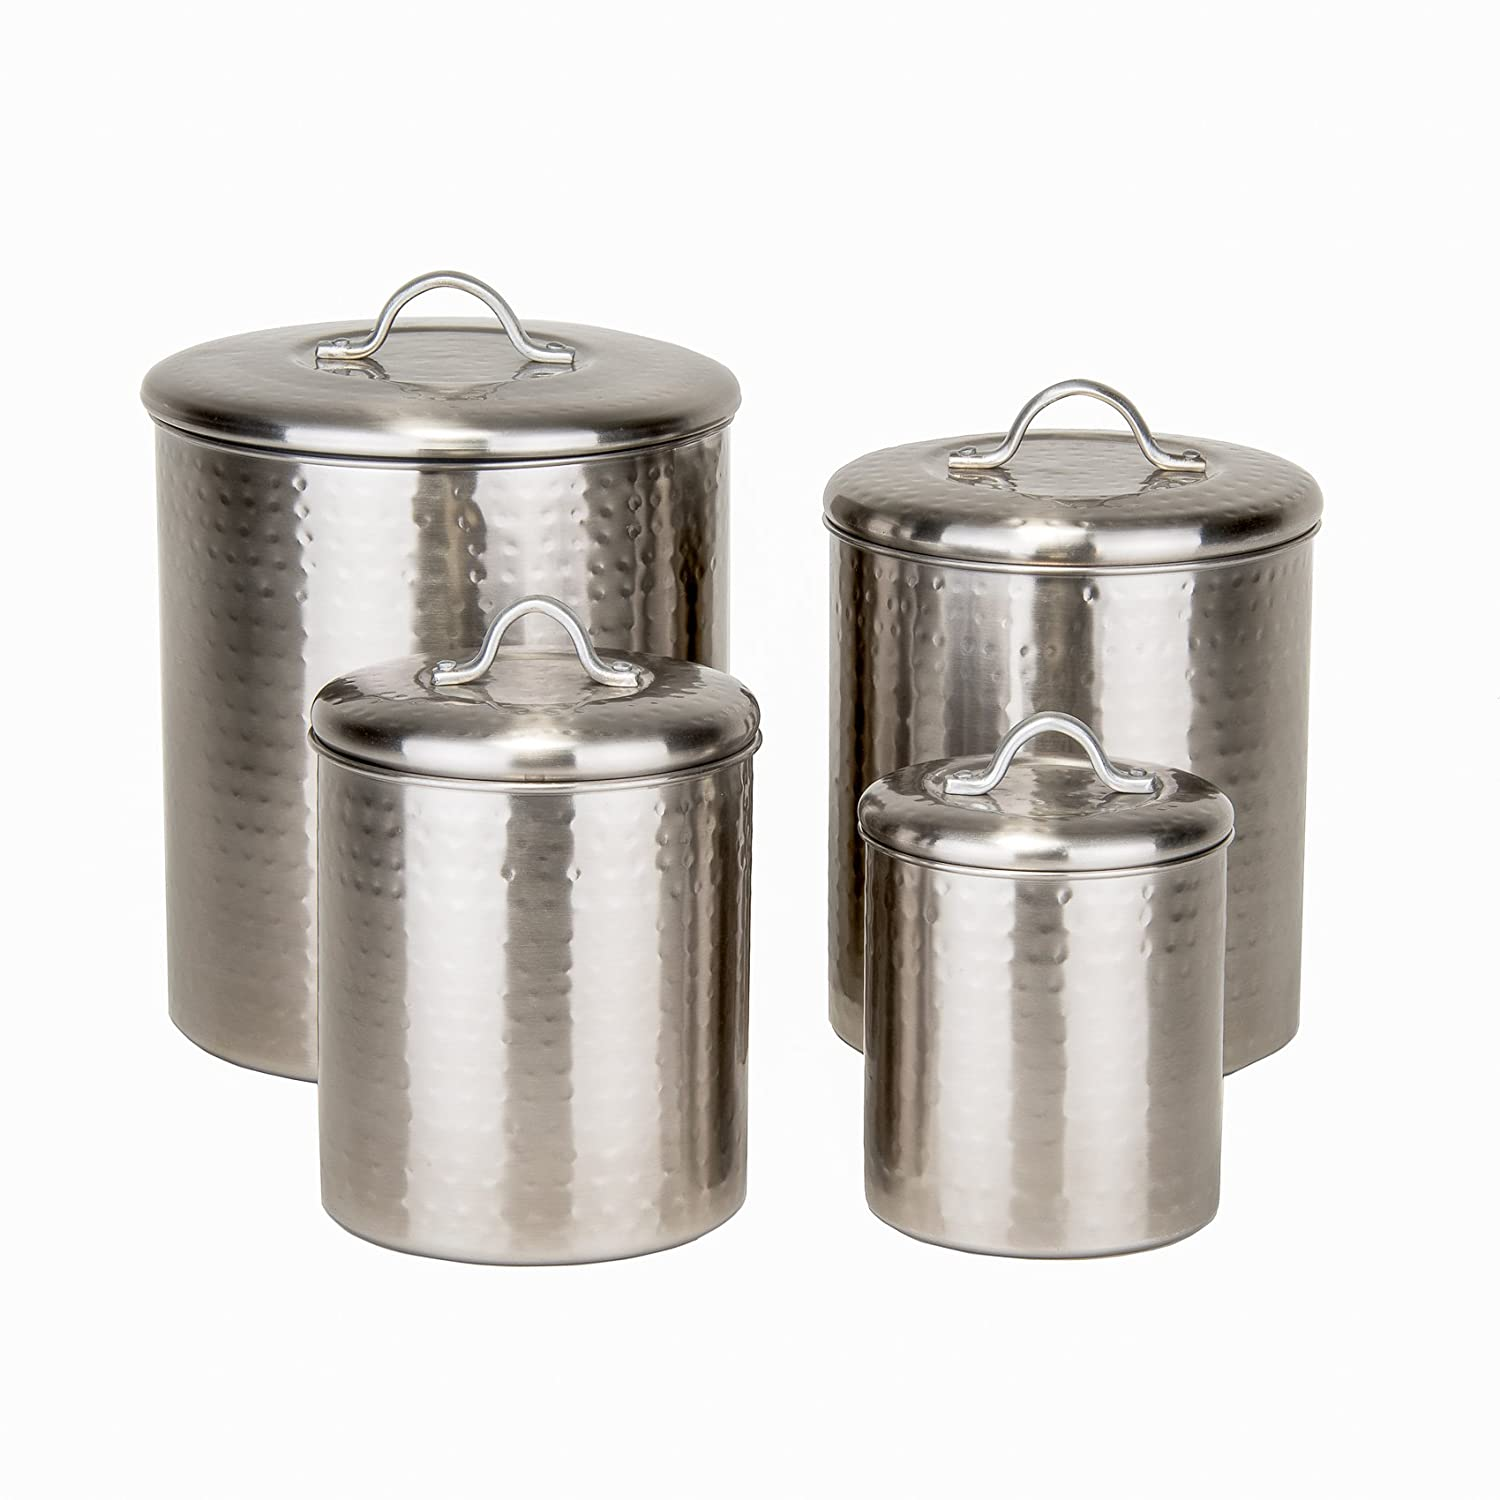 Rustic Kitchen Canisters Amazoncom Old Dutch 4 Piece Hammered Canister Set Brushed